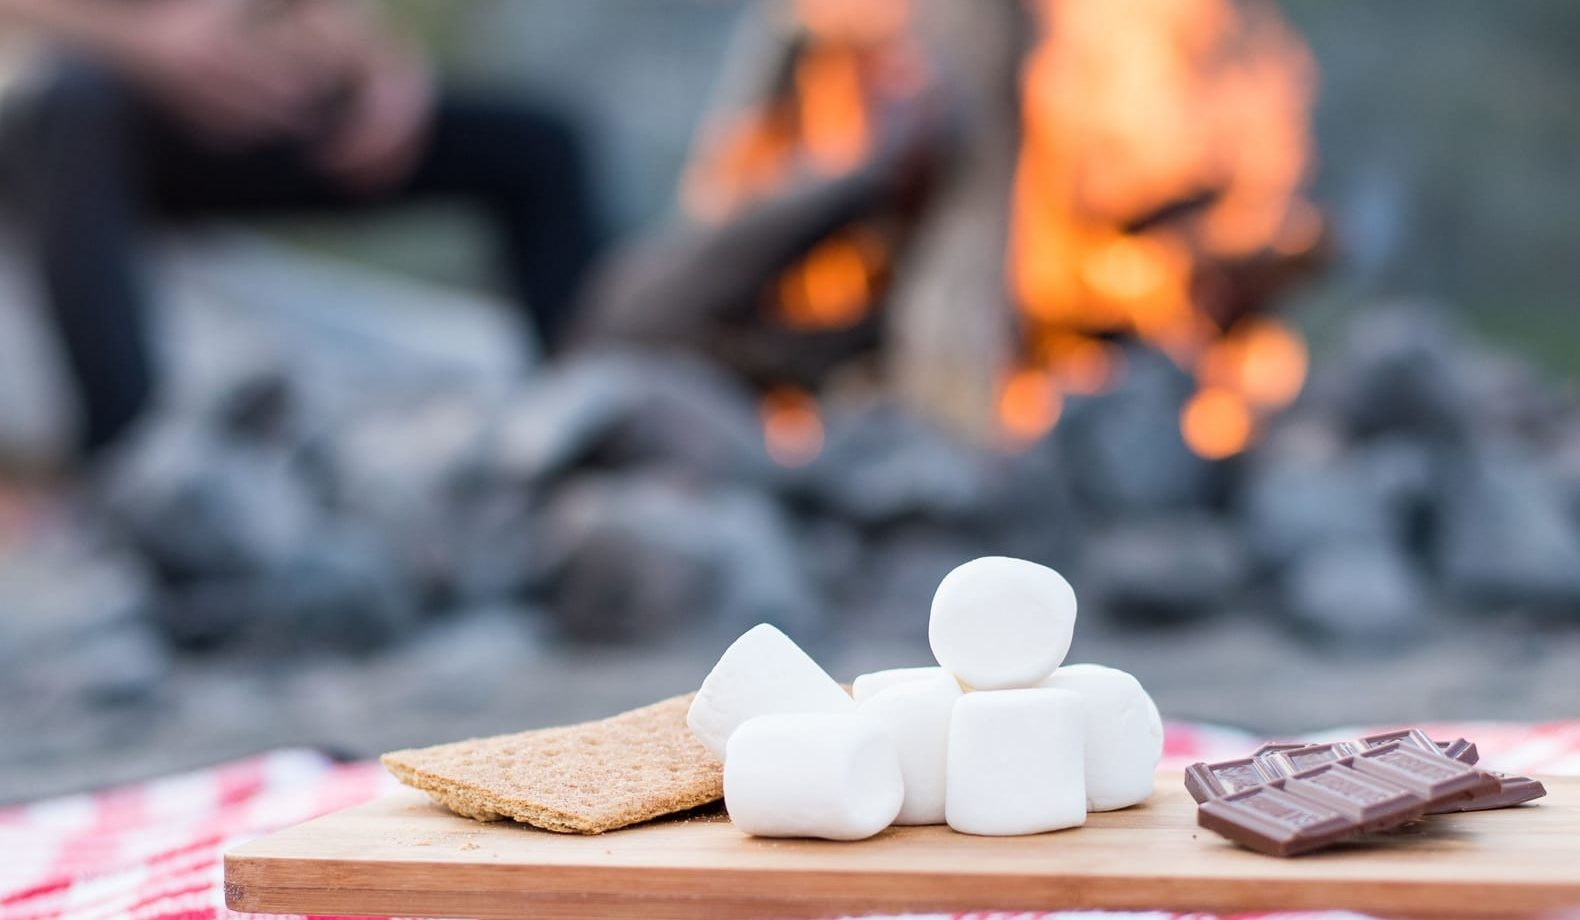 Chopping board with marshmallows, chocolate and biscuit in front of a camp fire